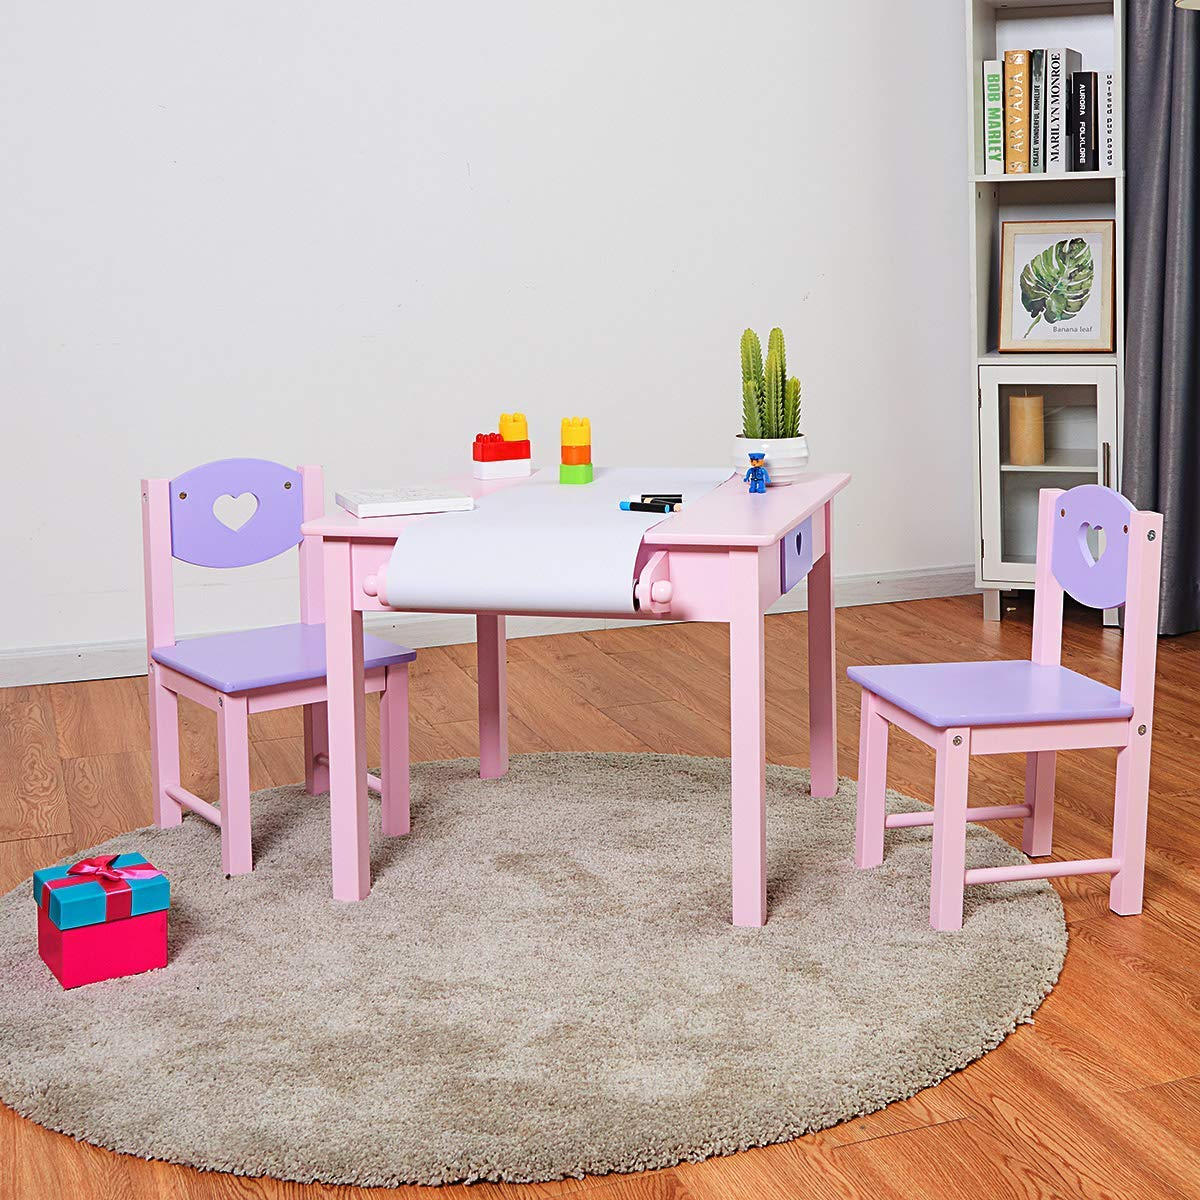 BABY JOY Kids Wood Table and 2 Chair Set, 3 in 1 Children Art Table with Paper Roll Rack and Storage for Toddlers Drawing, Reading, Dining, Art Playroom, 3 Piece Kiddy Painting Desk Chair Set by BABY JOY